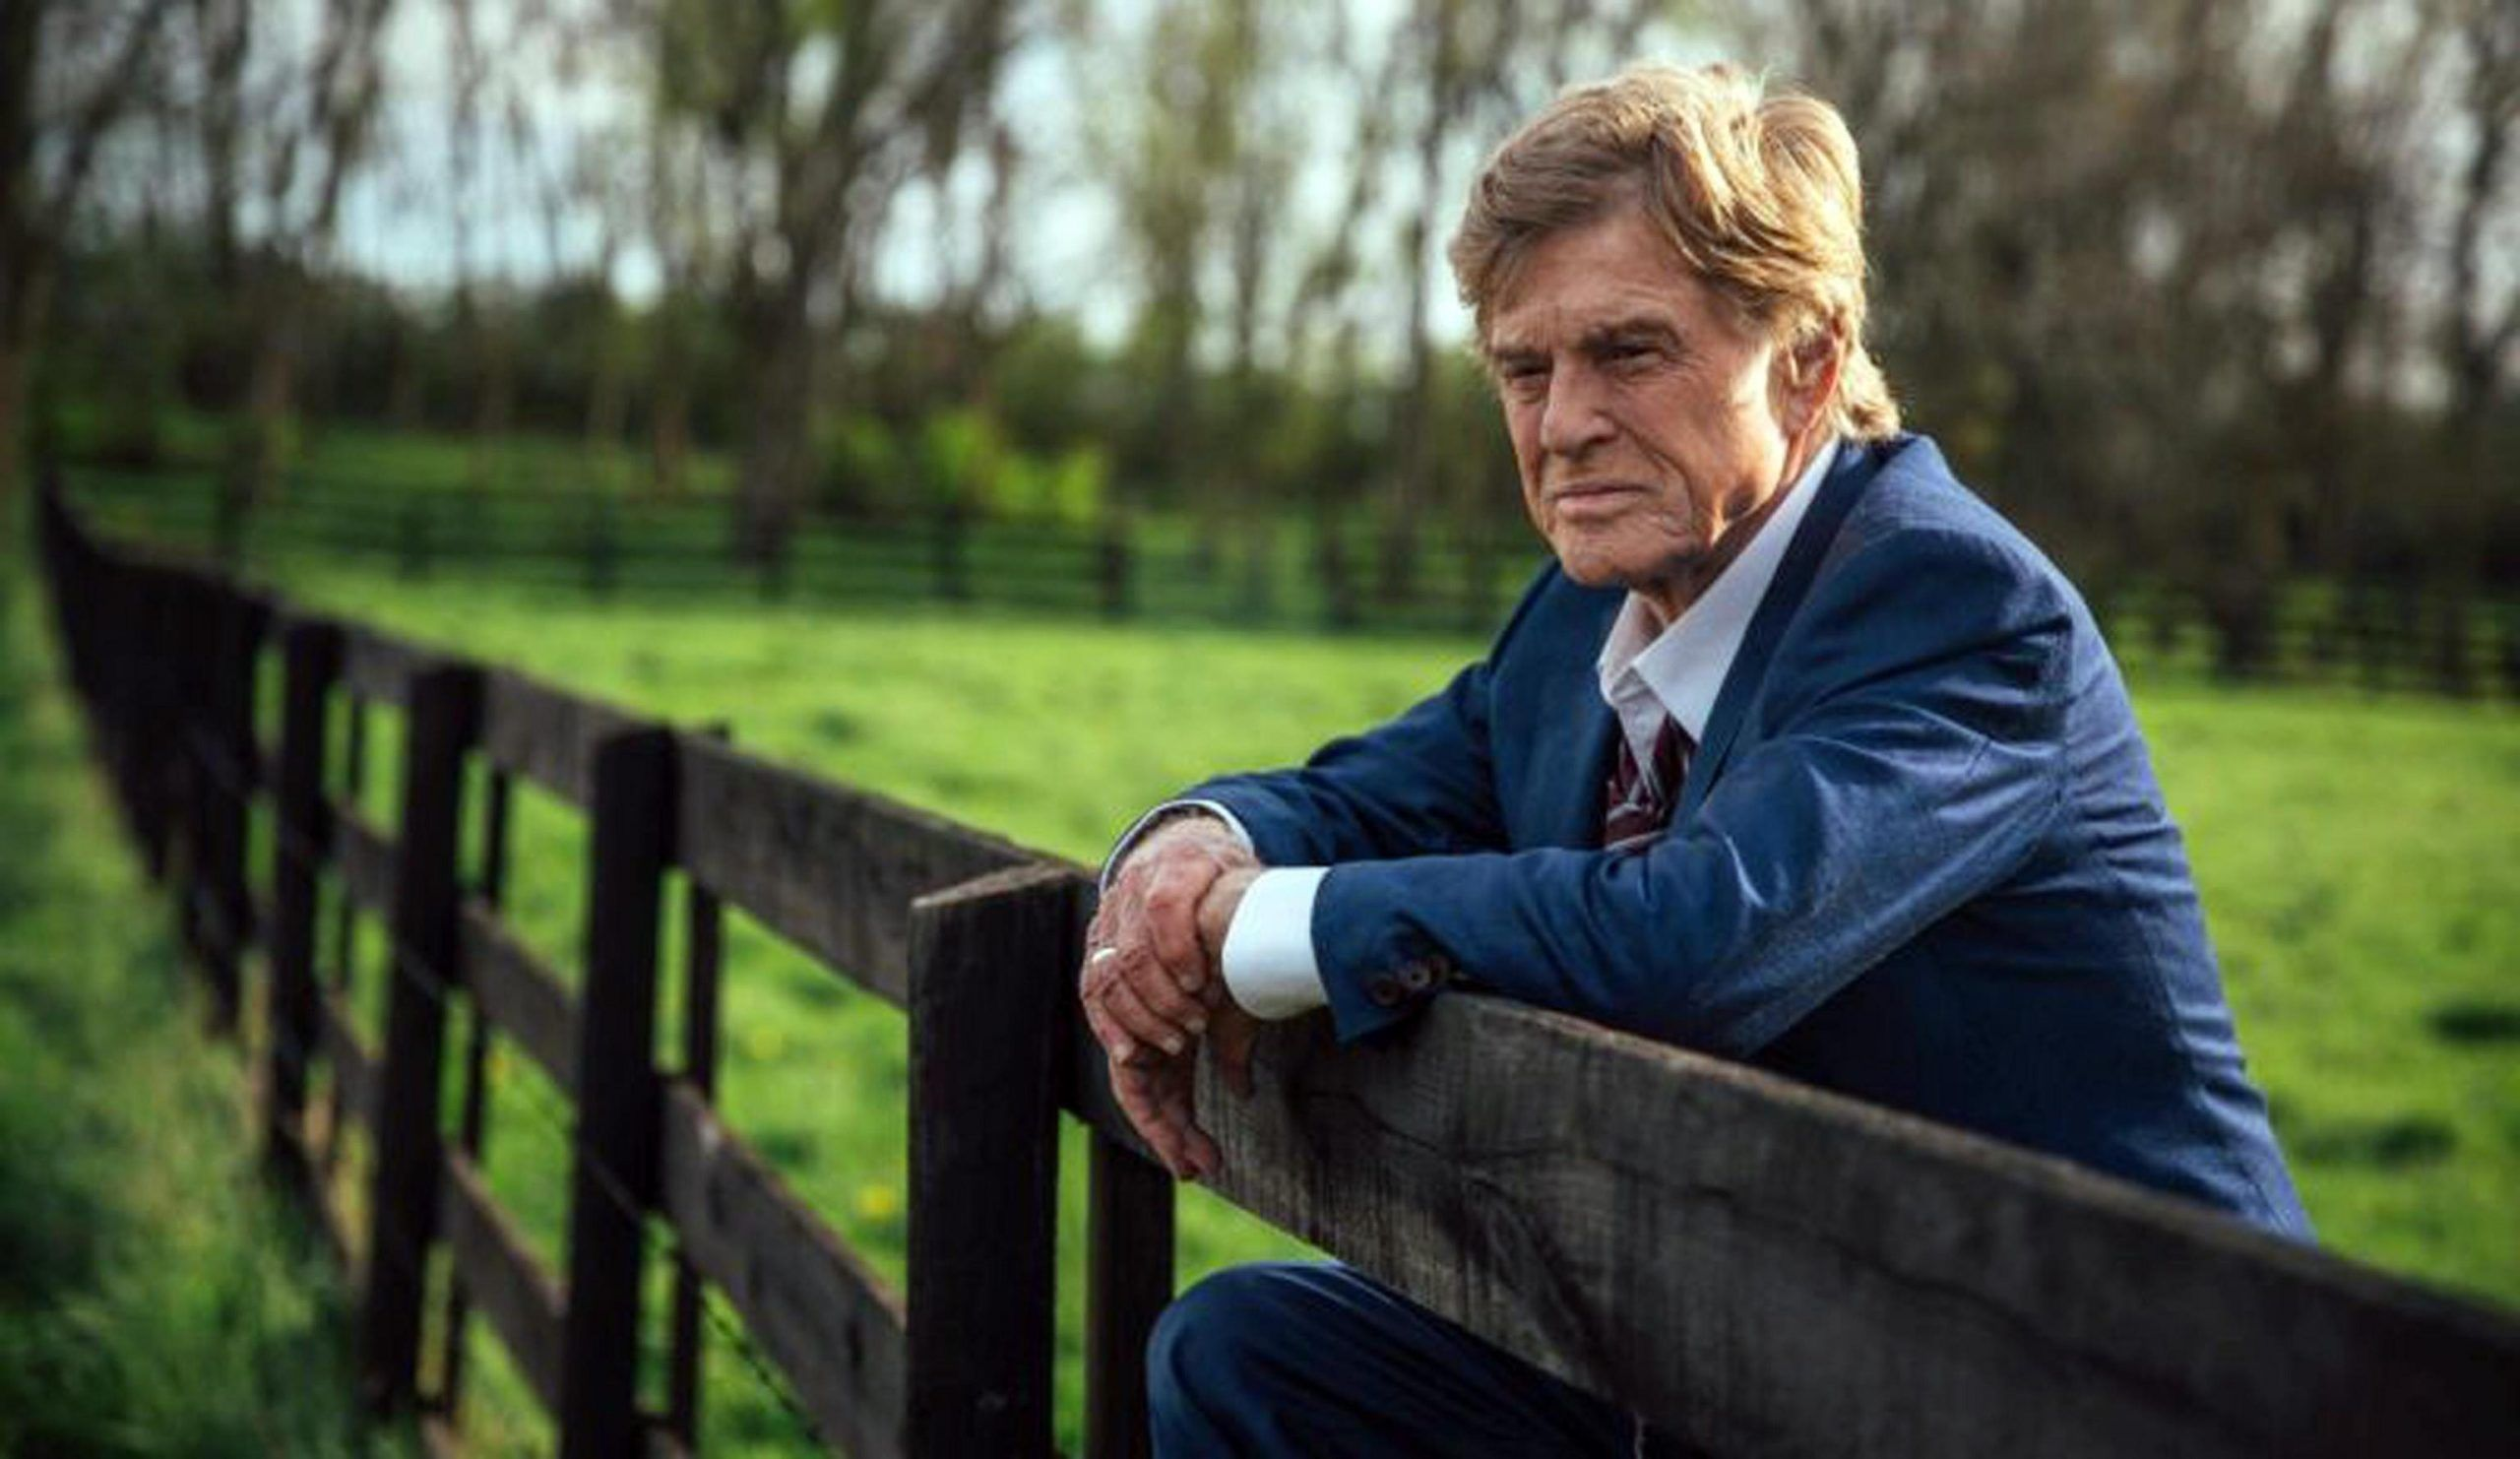 Cinema: Robert Redford dice addio alle scene, ultimo film 'The Old Man and the Gun'